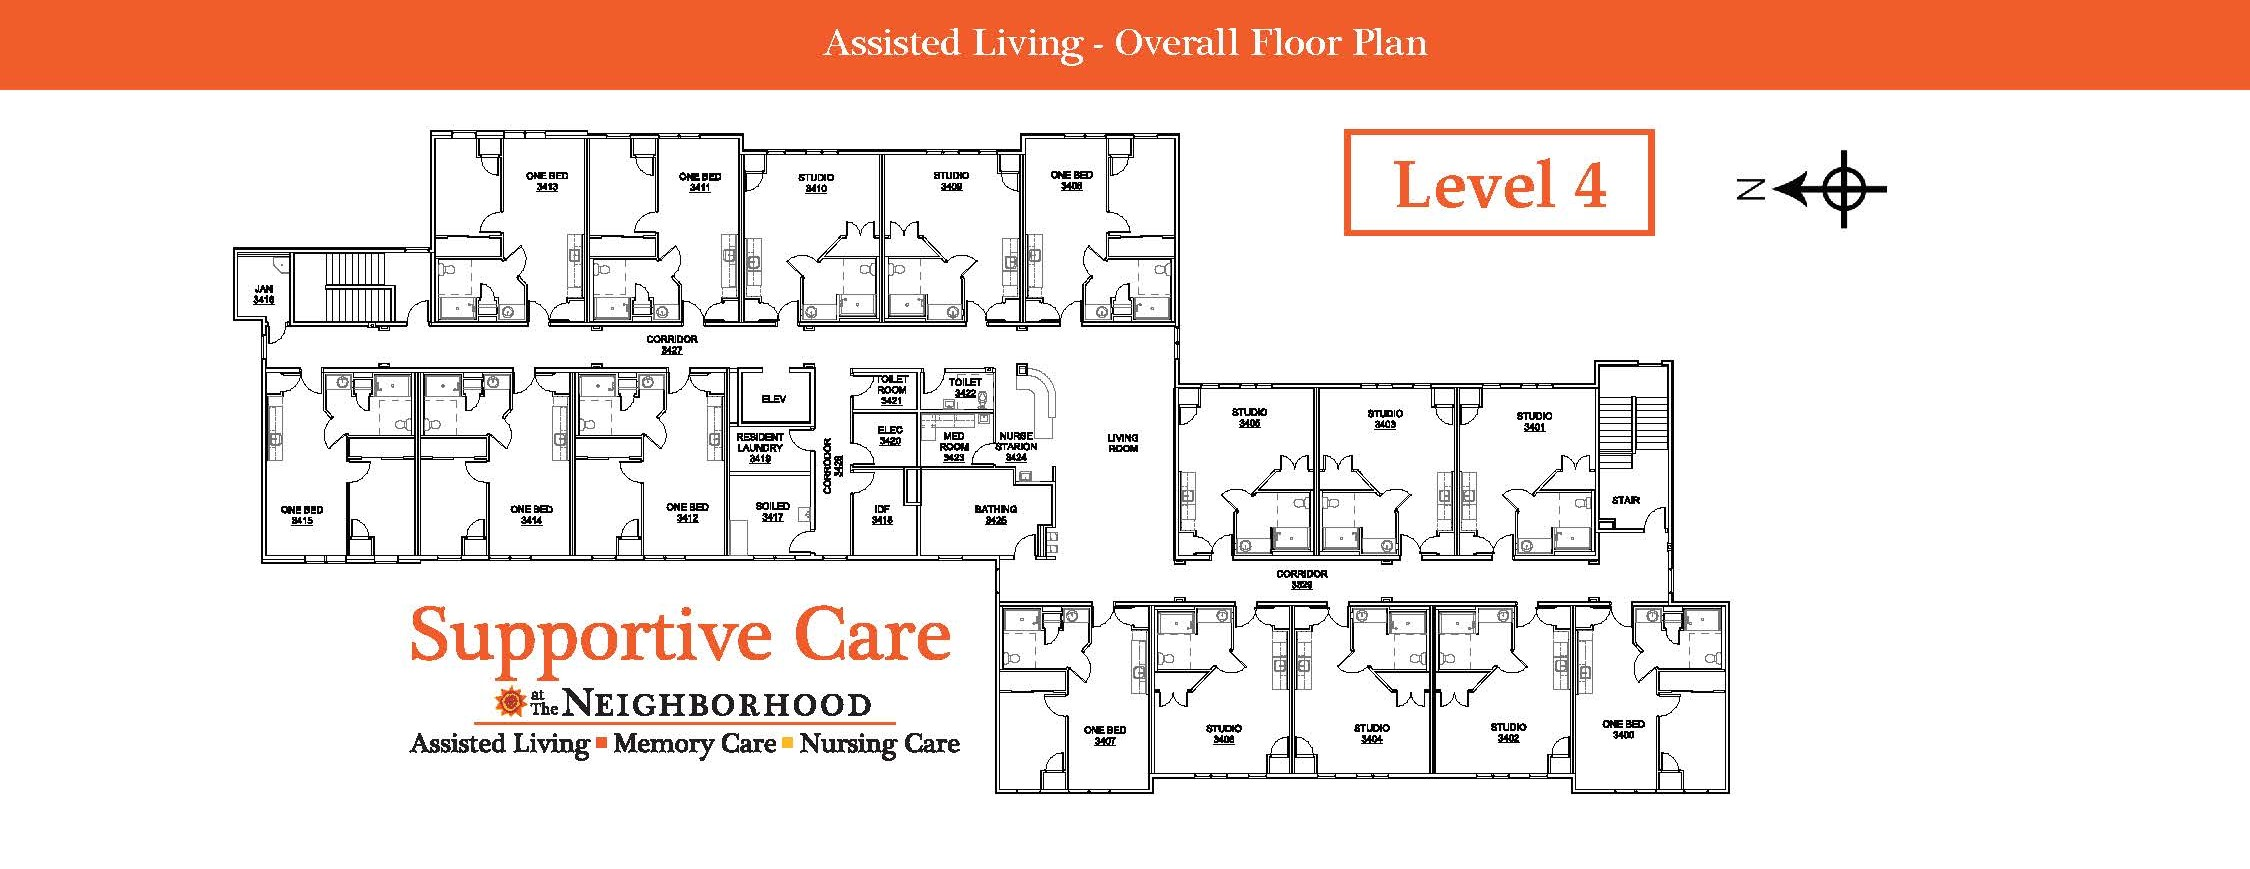 Assisted Living Level 4 Map